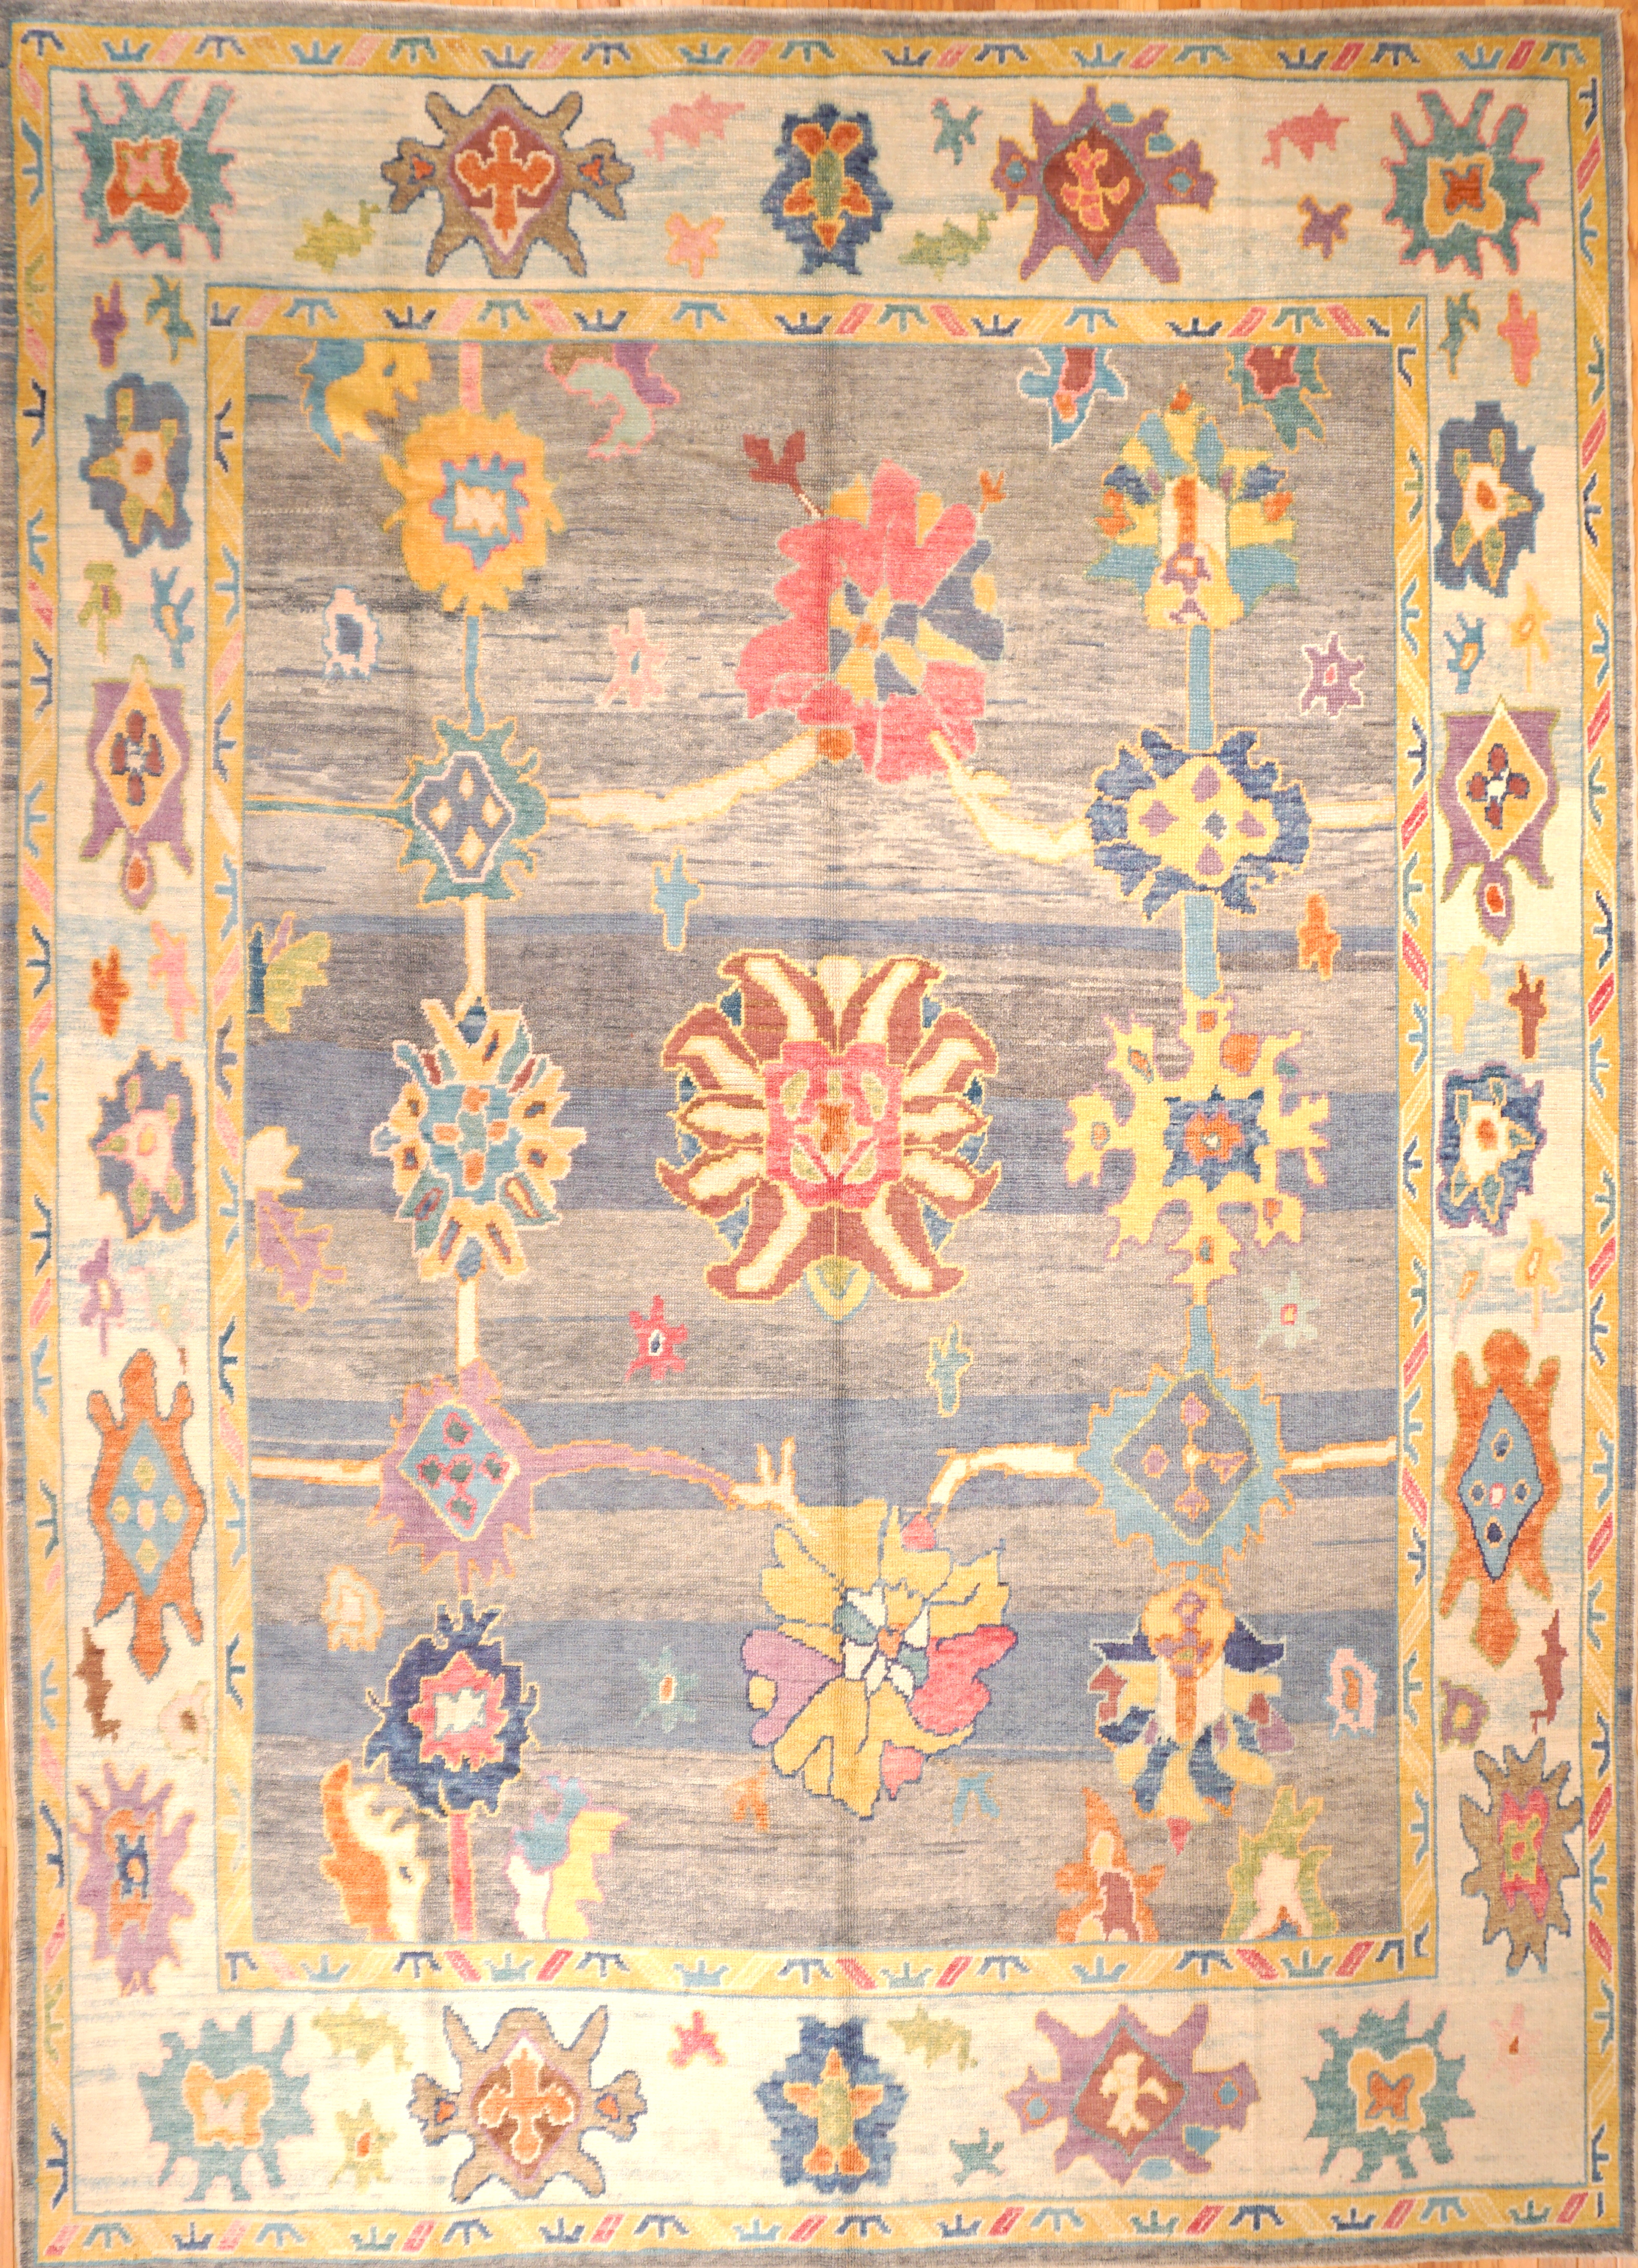 patterns blog kilims which their can traditional pars be such words meanings geometric as of well have known occasion for above these or rug gallery are motifs every many those regarded